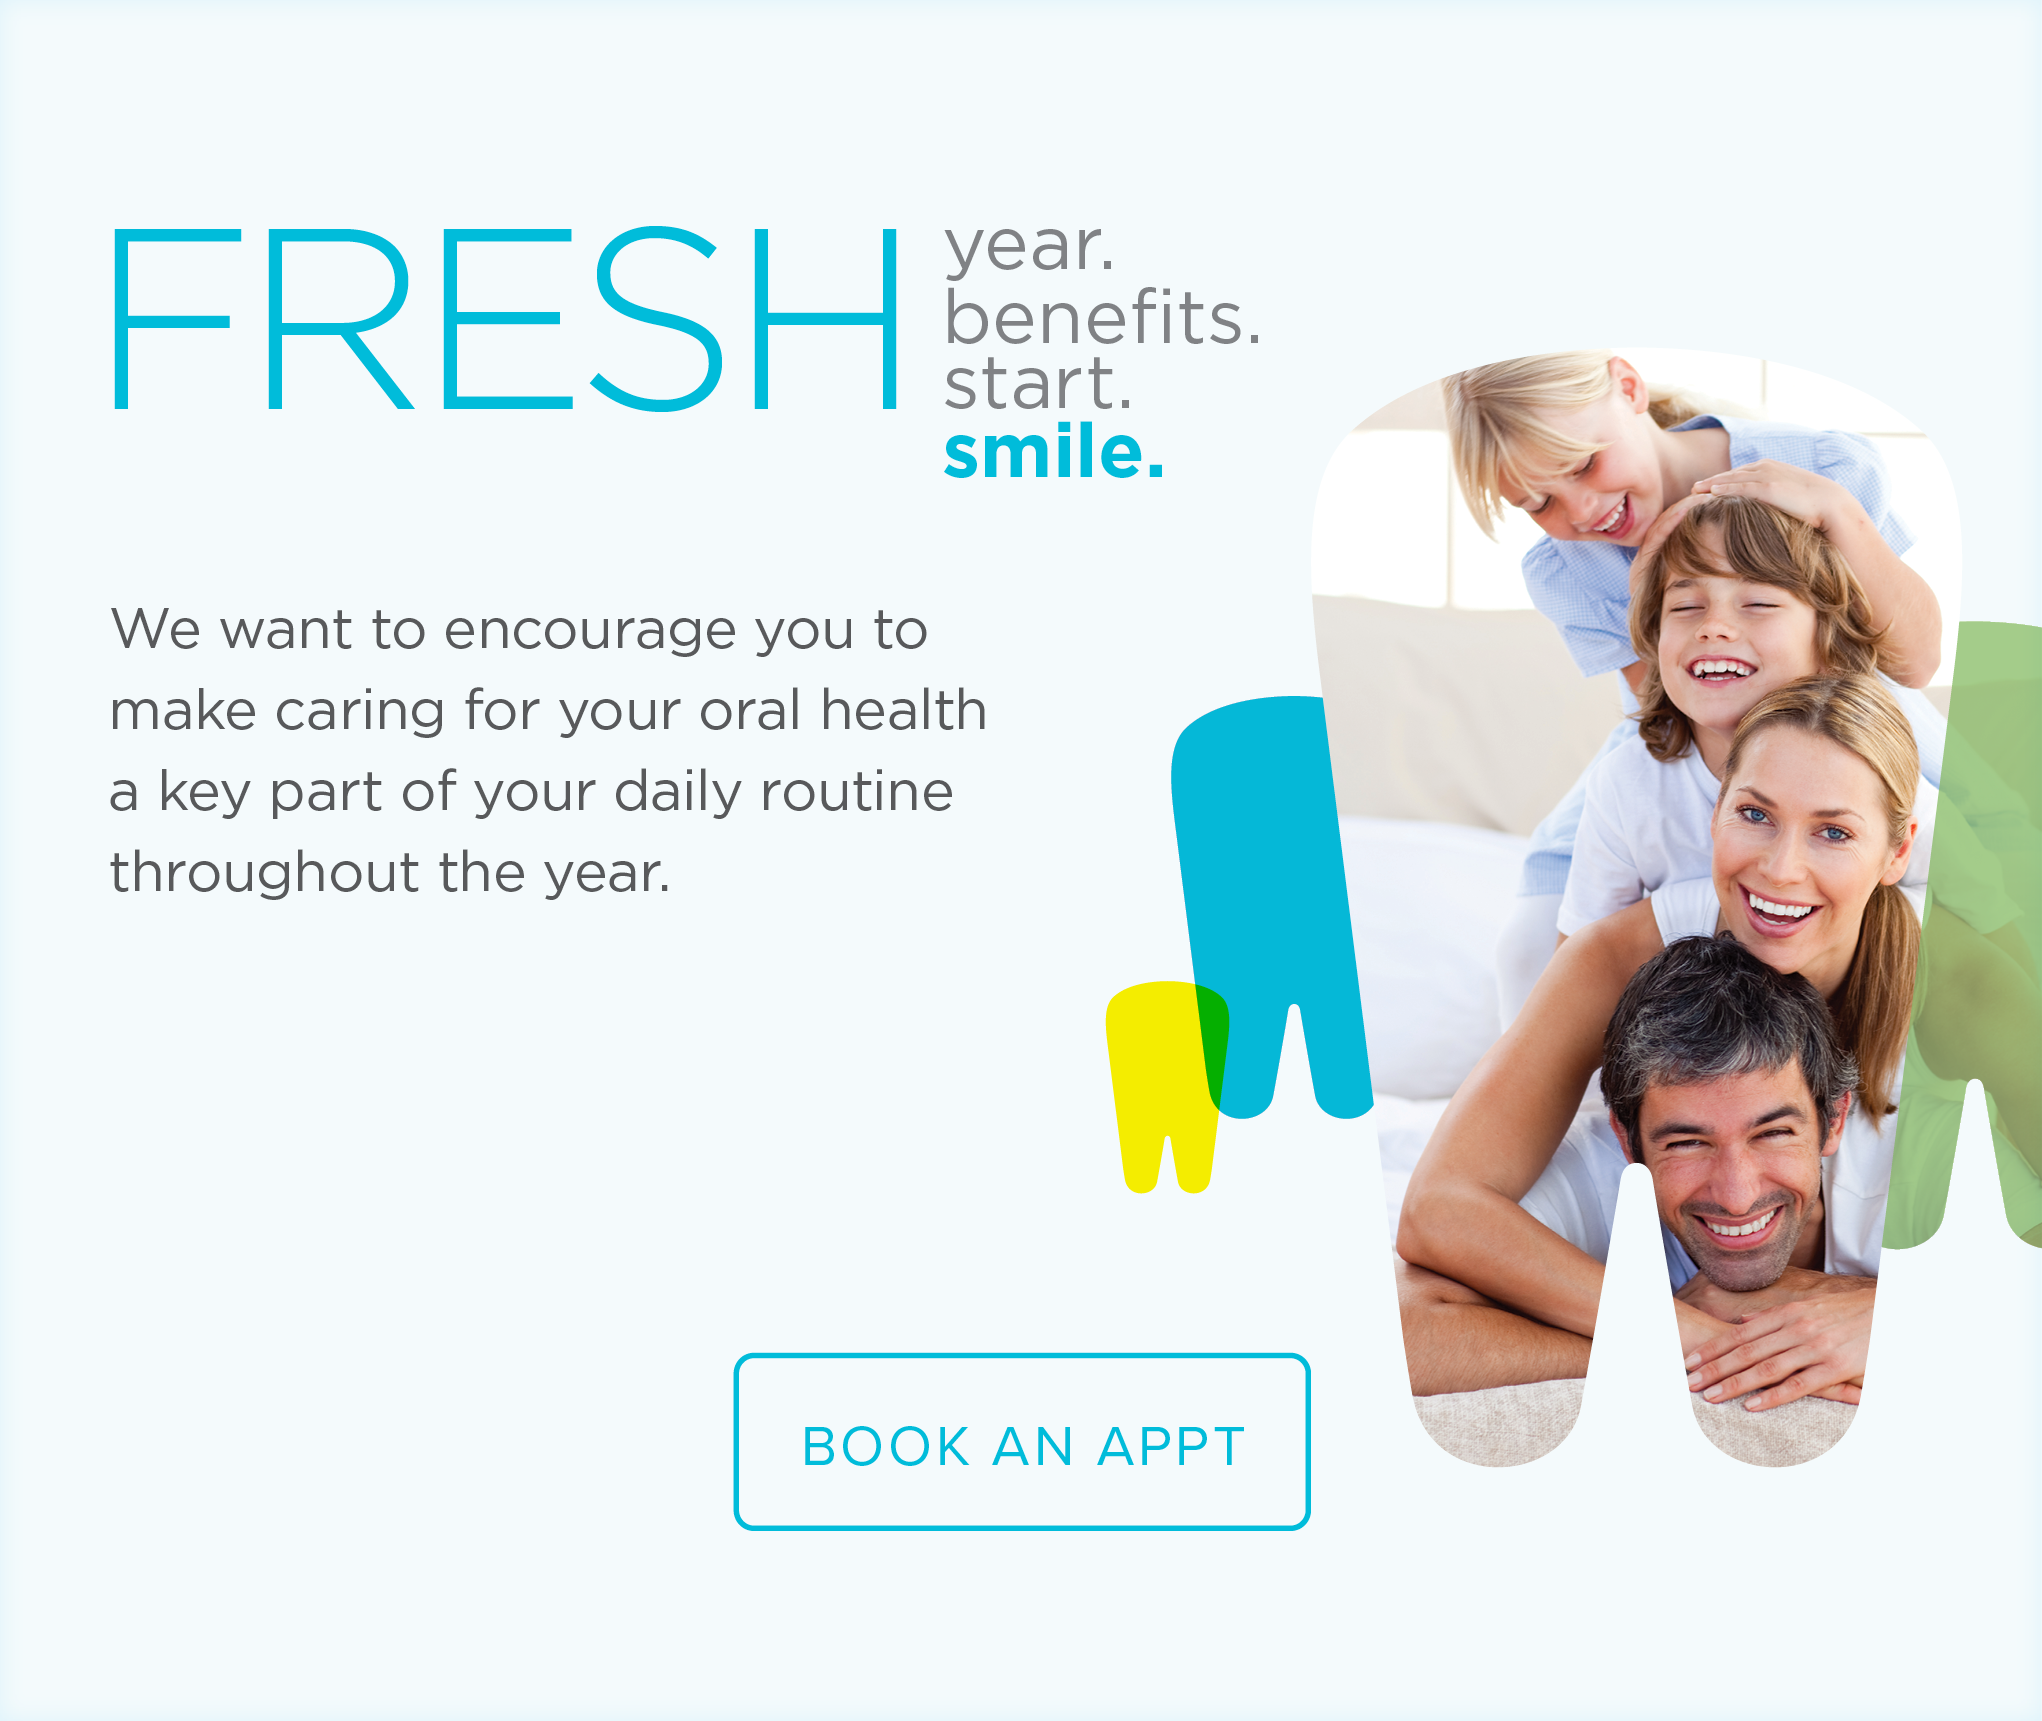 Park Place Dental Group and Orthodontics - Make the Most of Your Benefits